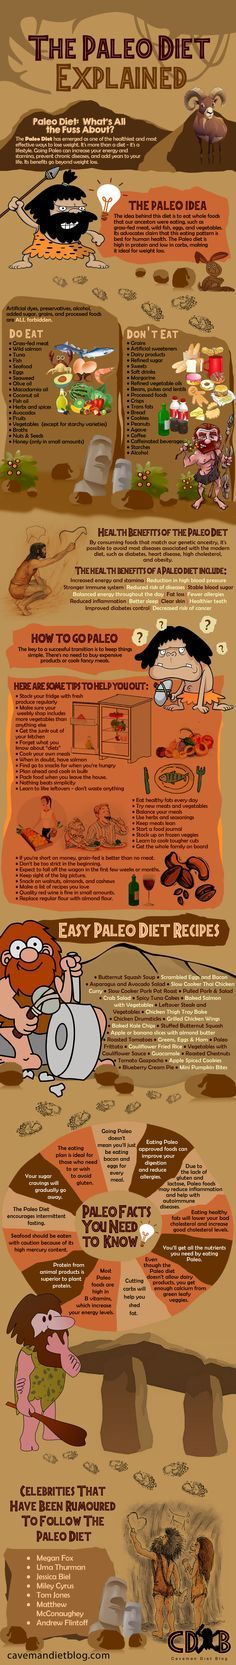 I've been detoxing and so far I've lost 4 pounds, 16 more to go and after my juice detox I'm going Paleo since it's the easiest since I love meat and veggies.